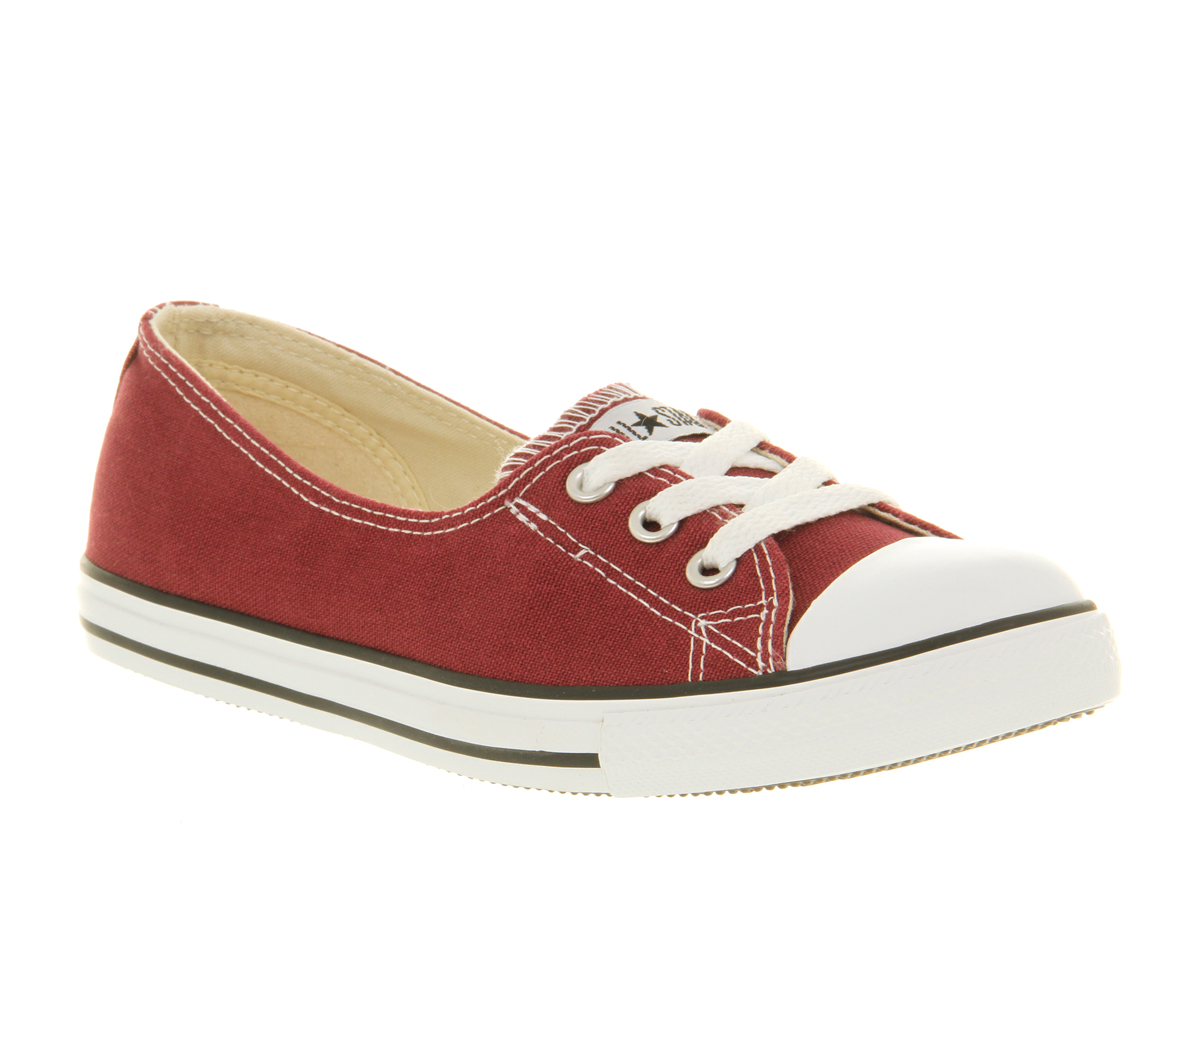 b867606dee71 Image is loading Womens-Converse-Dance-Lace-Maroon-Cranberry -Exclusive-Trainers-